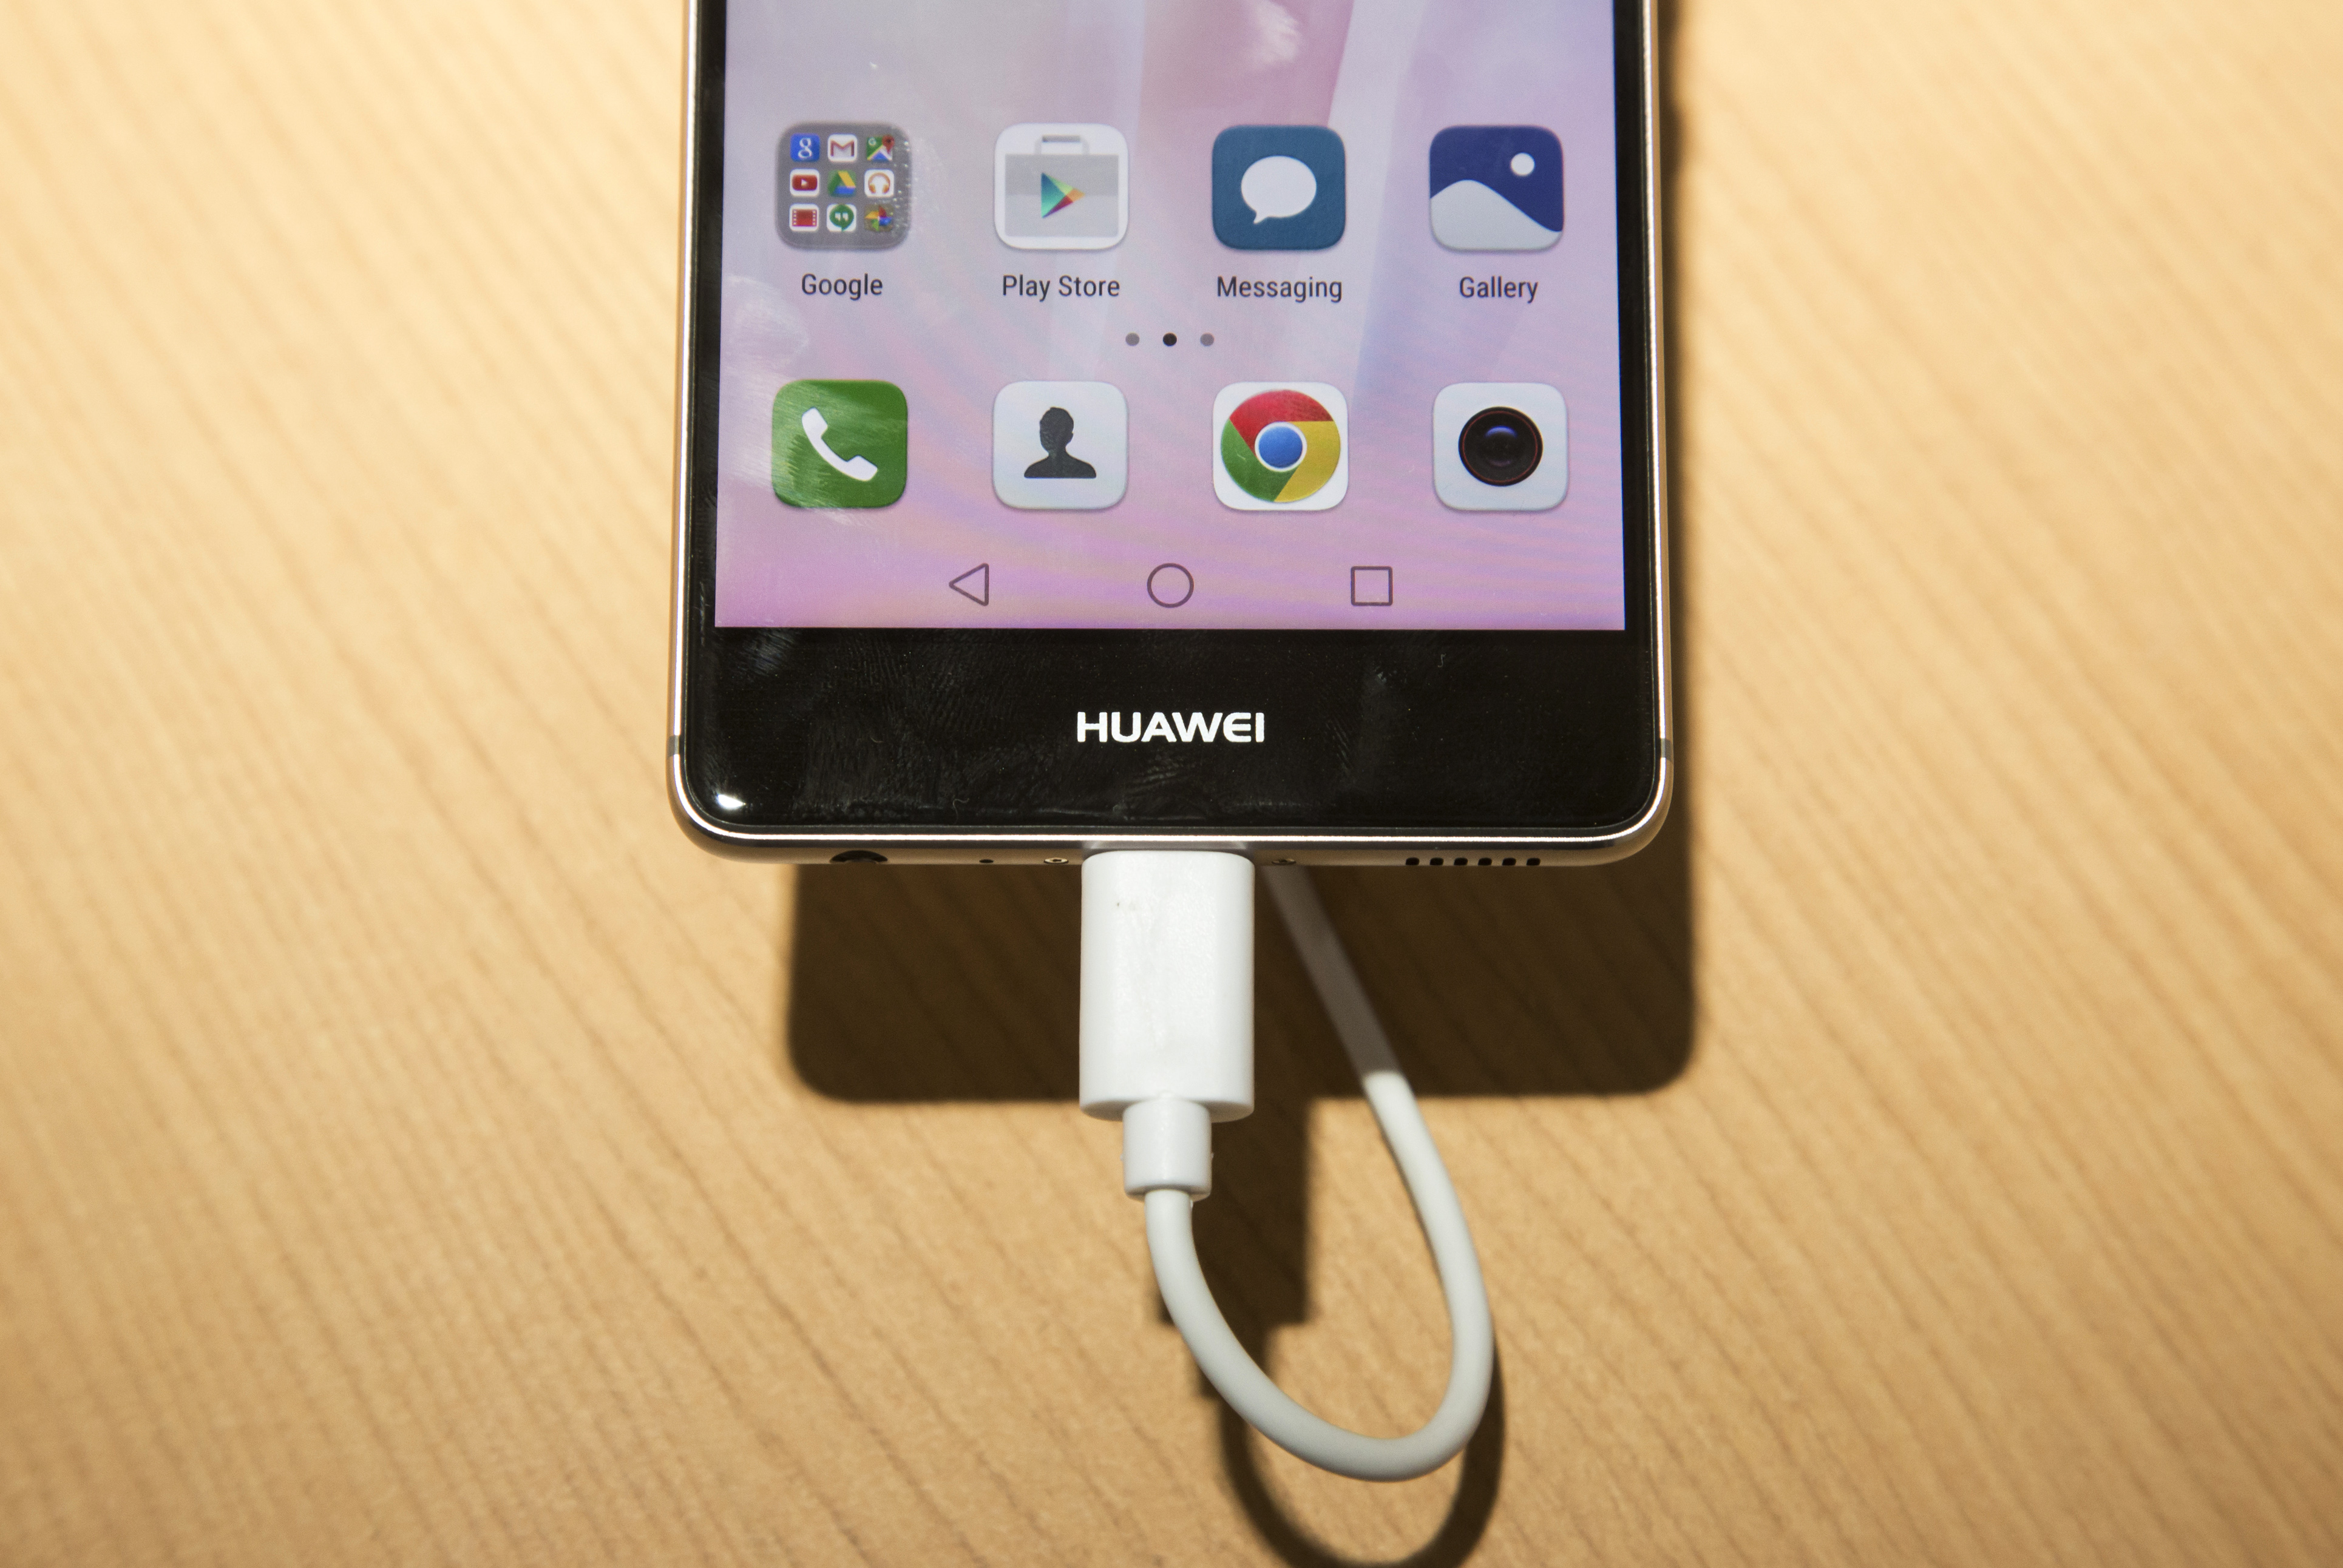 Huawei Technologies Launches the P9 Smartphone in India